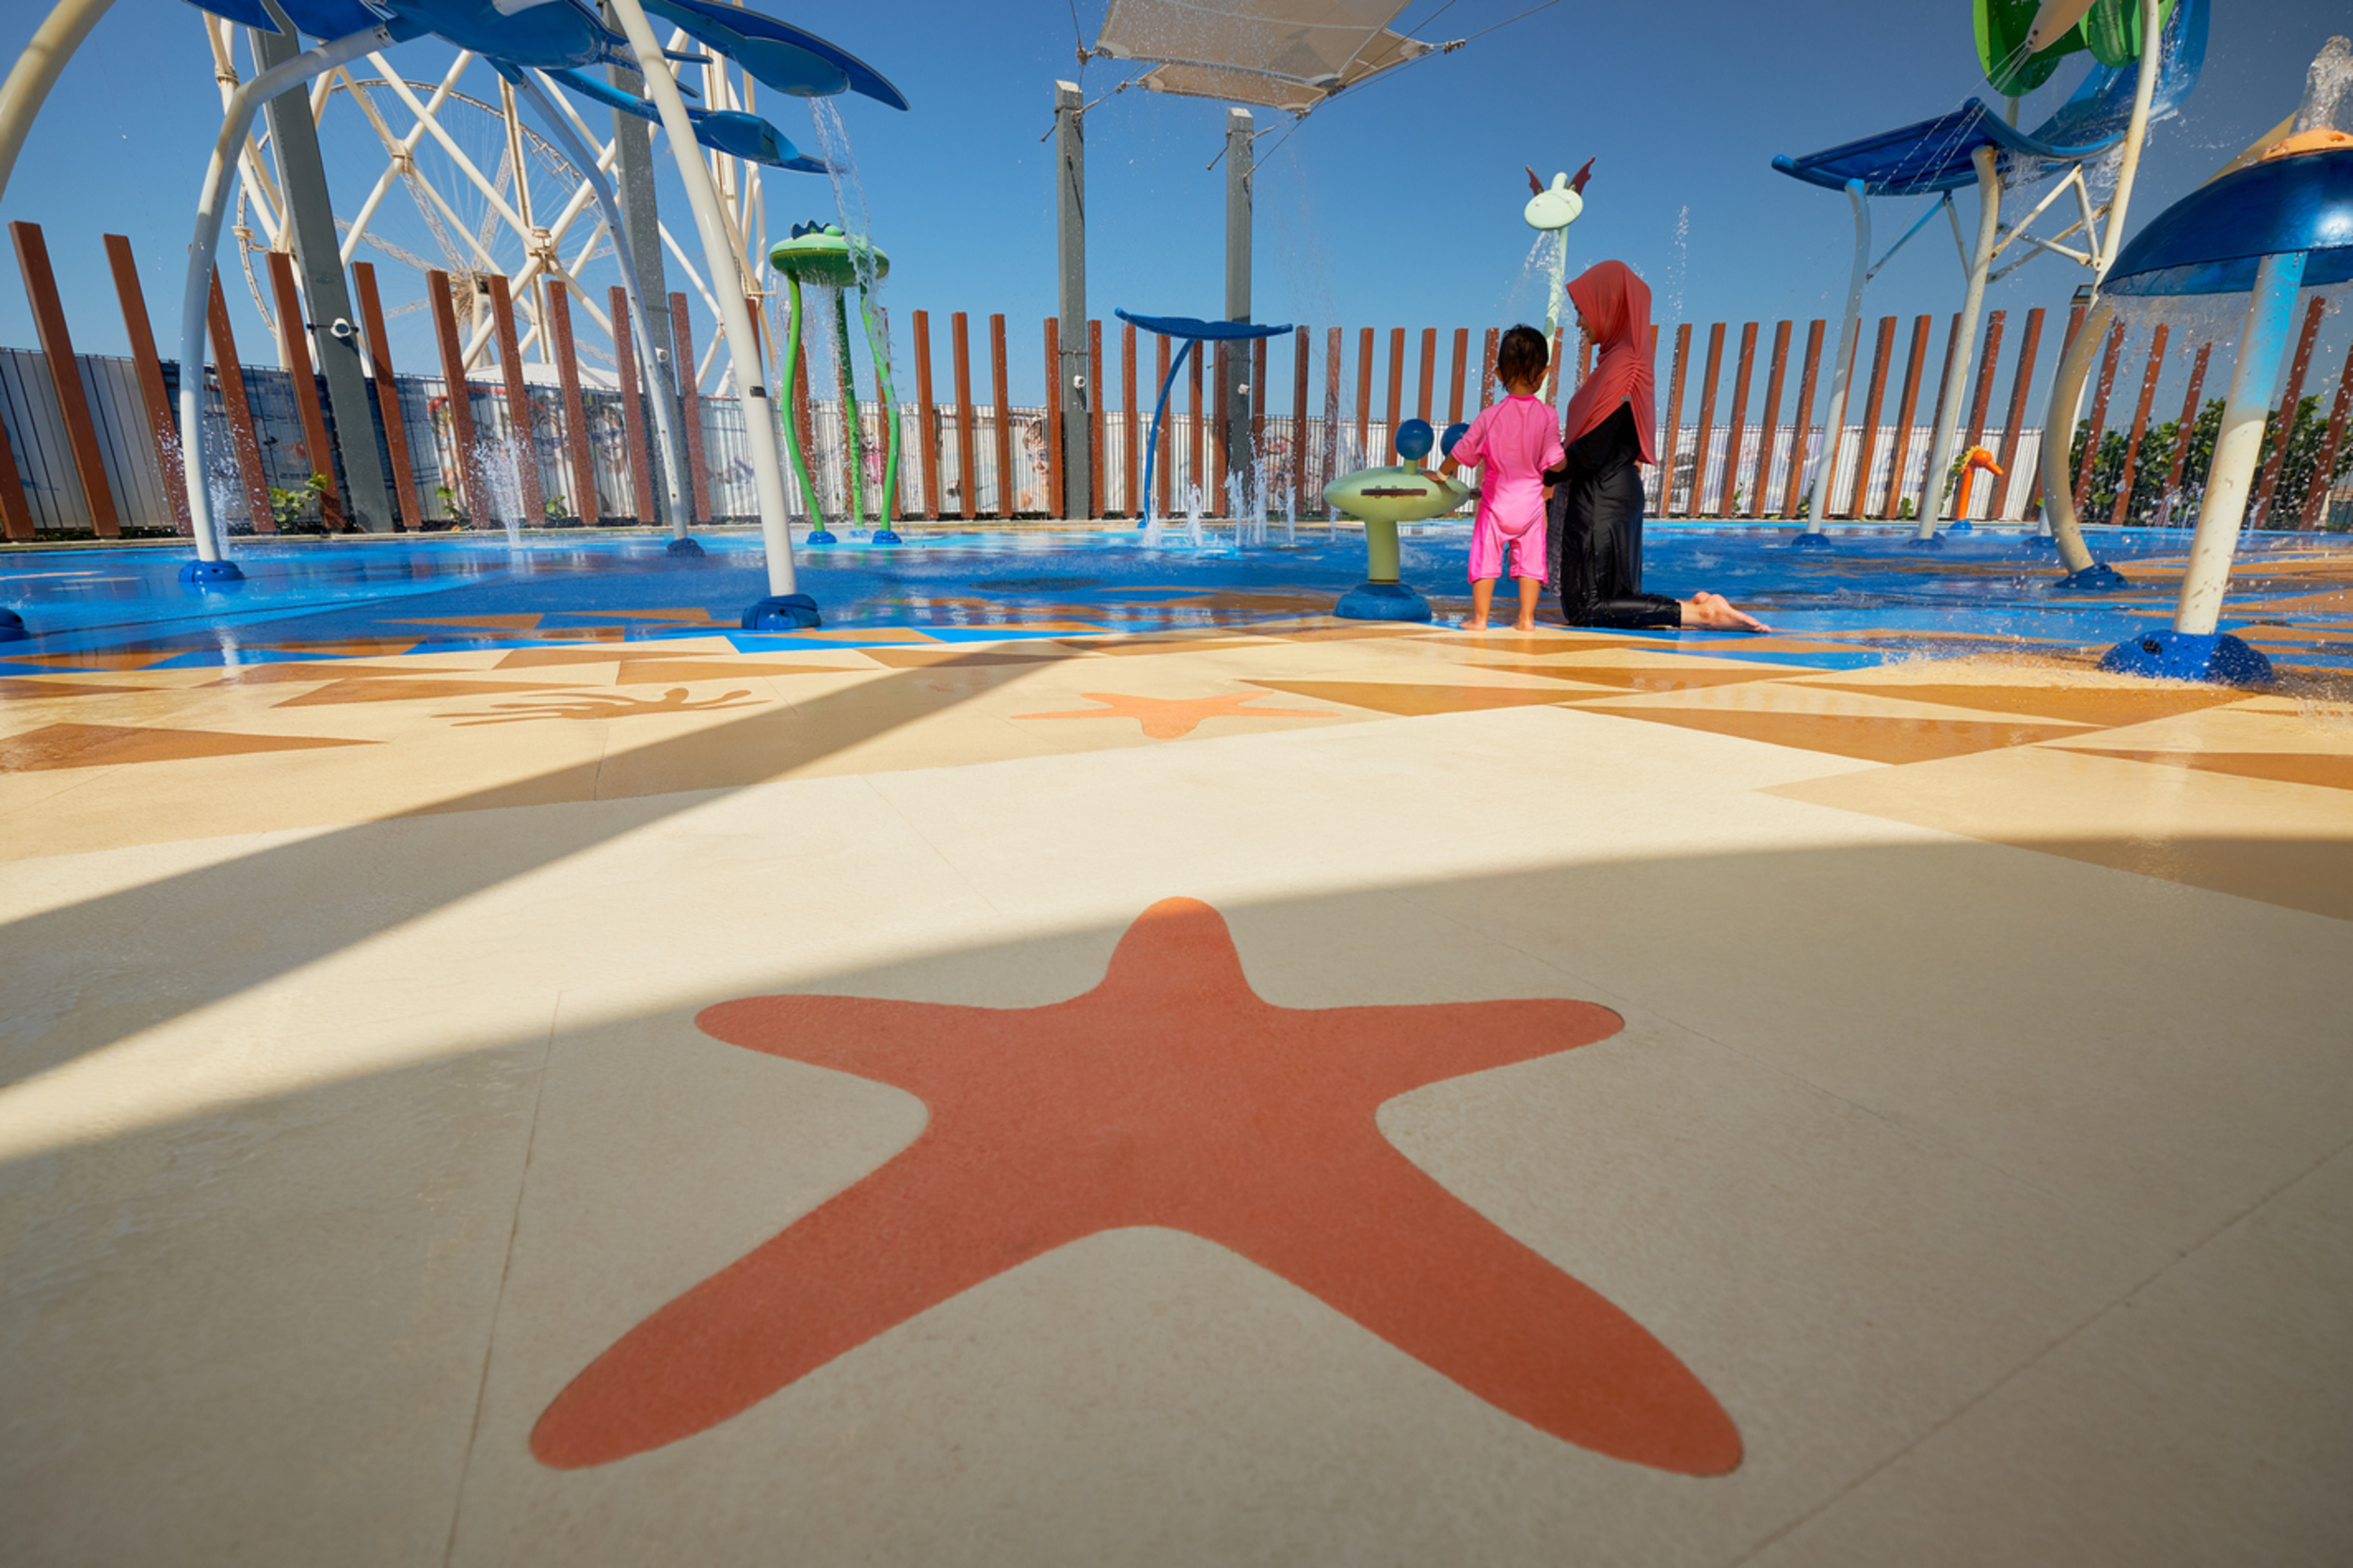 The_Beach_Splash_Pad_RGR26544 (3).jpg